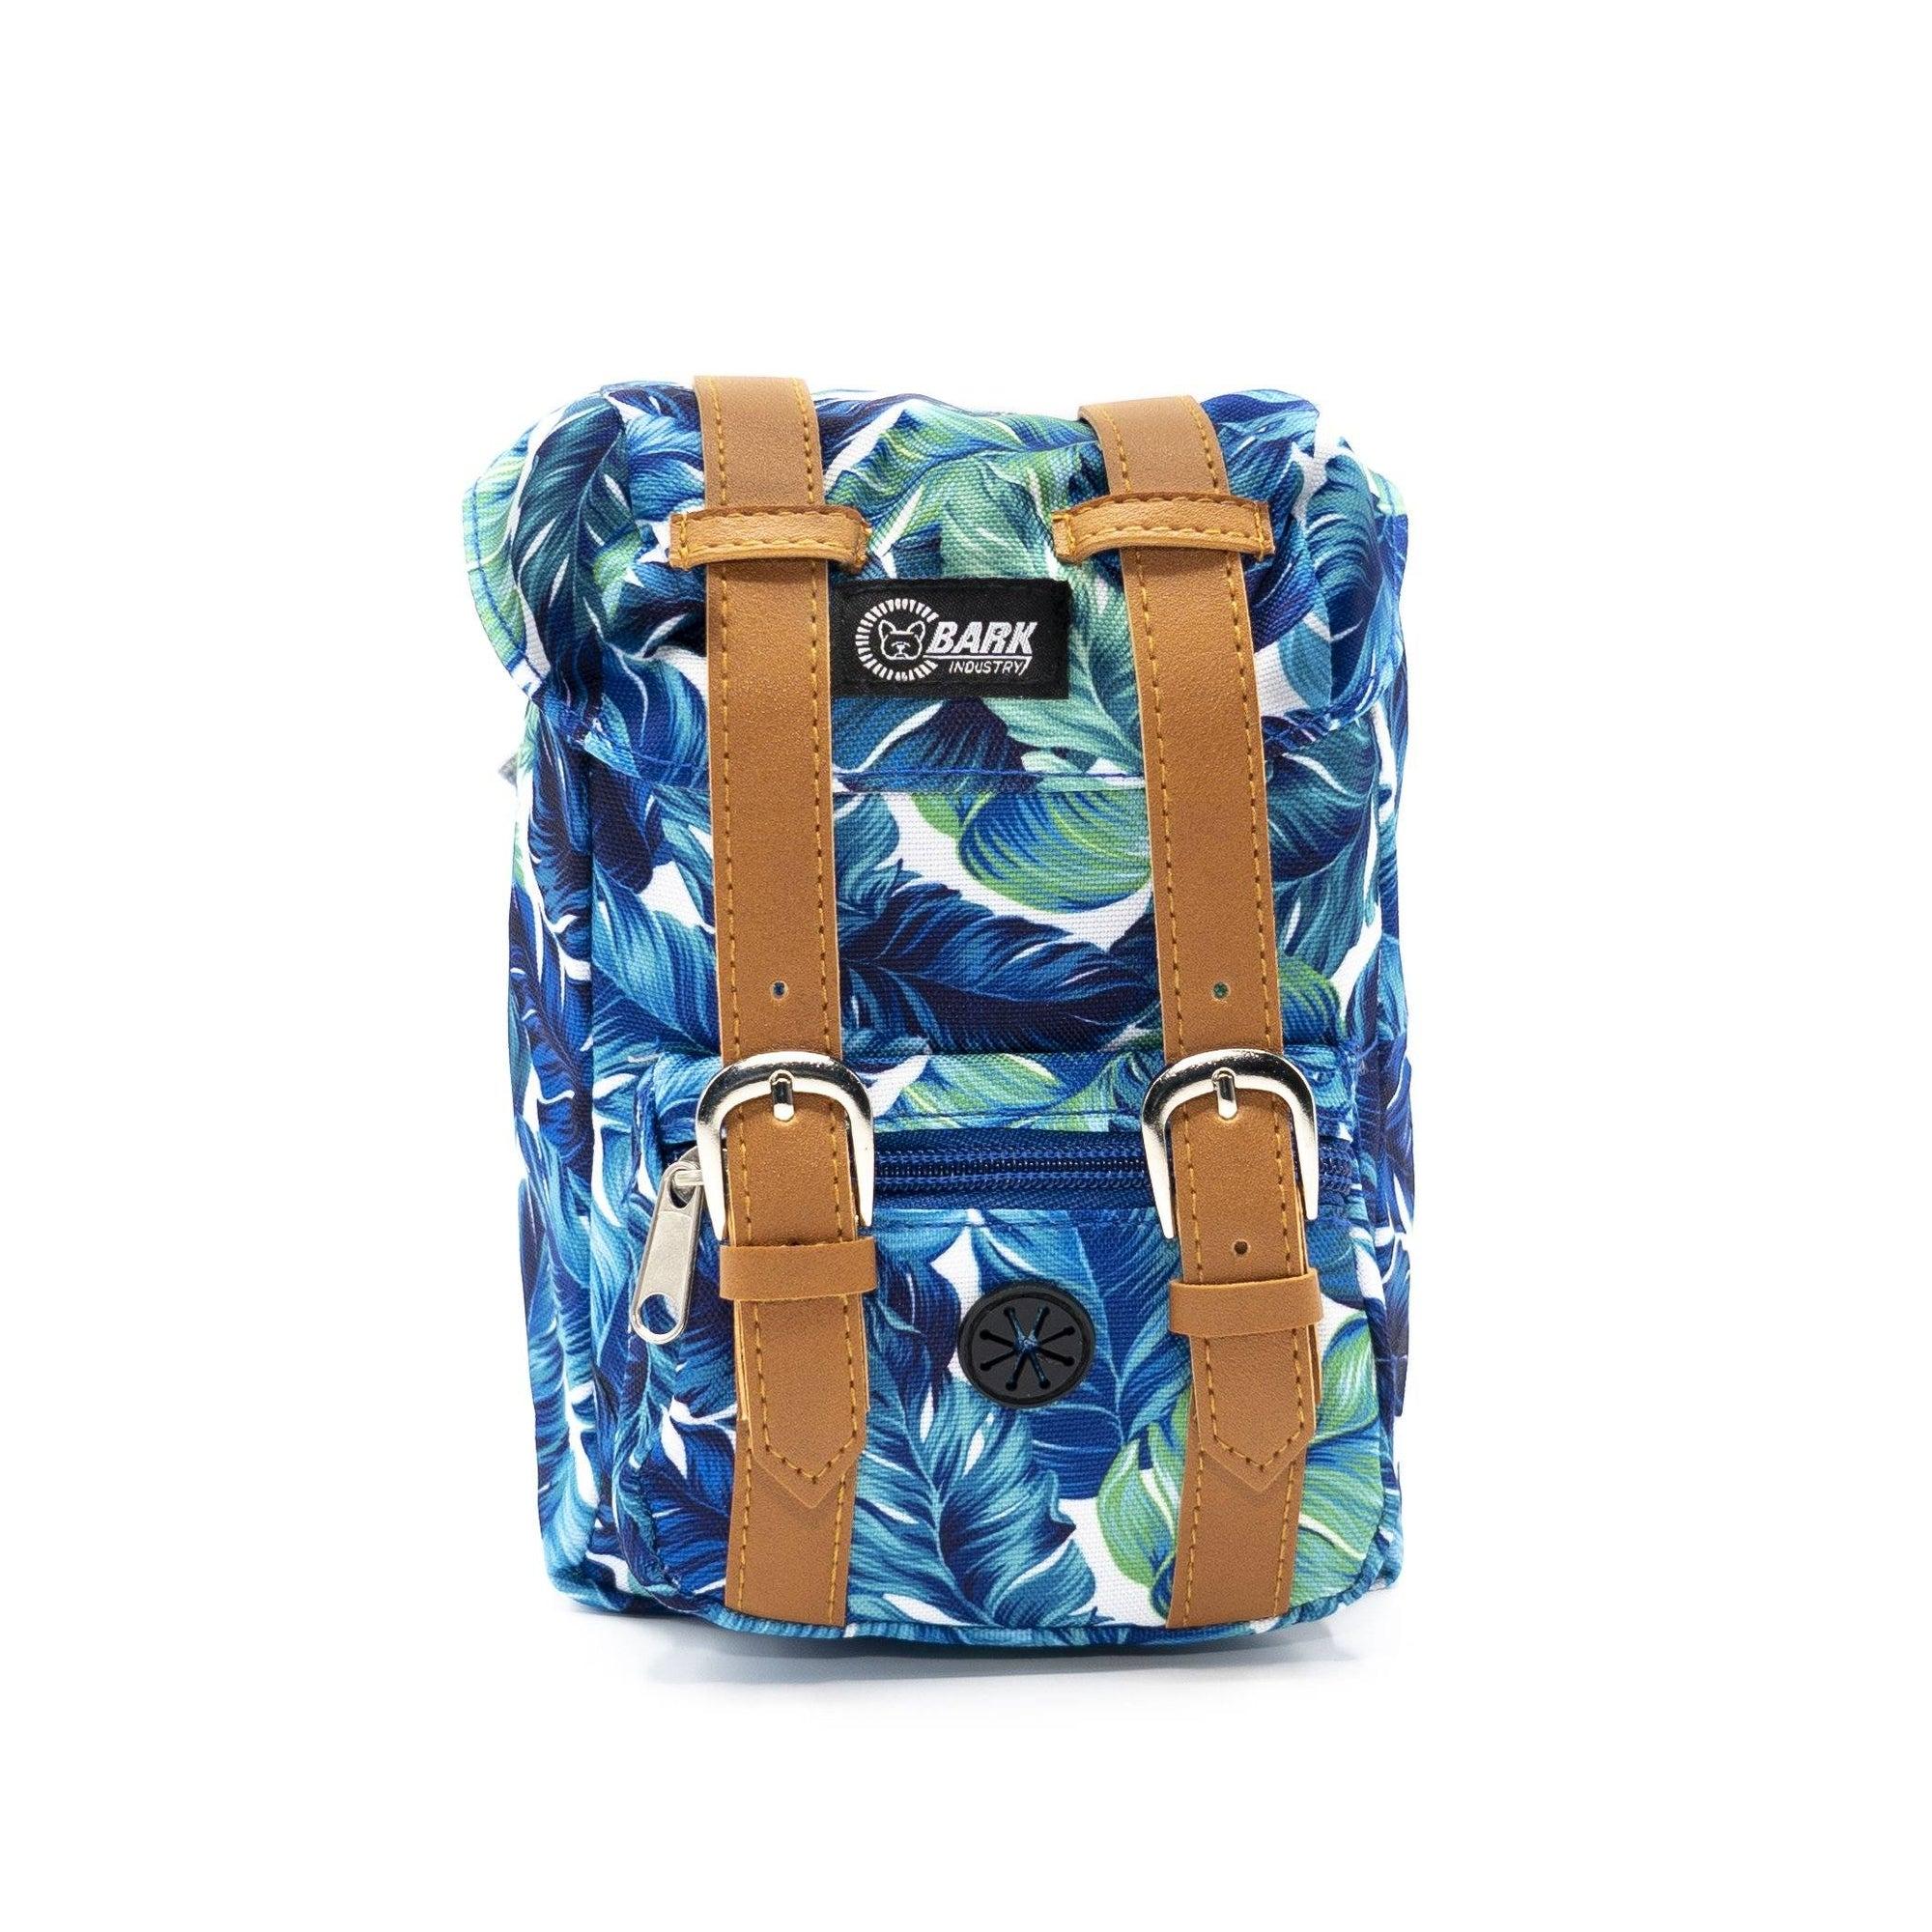 LIMITED EDITION HAWAIIAN POLU BLUE BACKPACK barkindustry